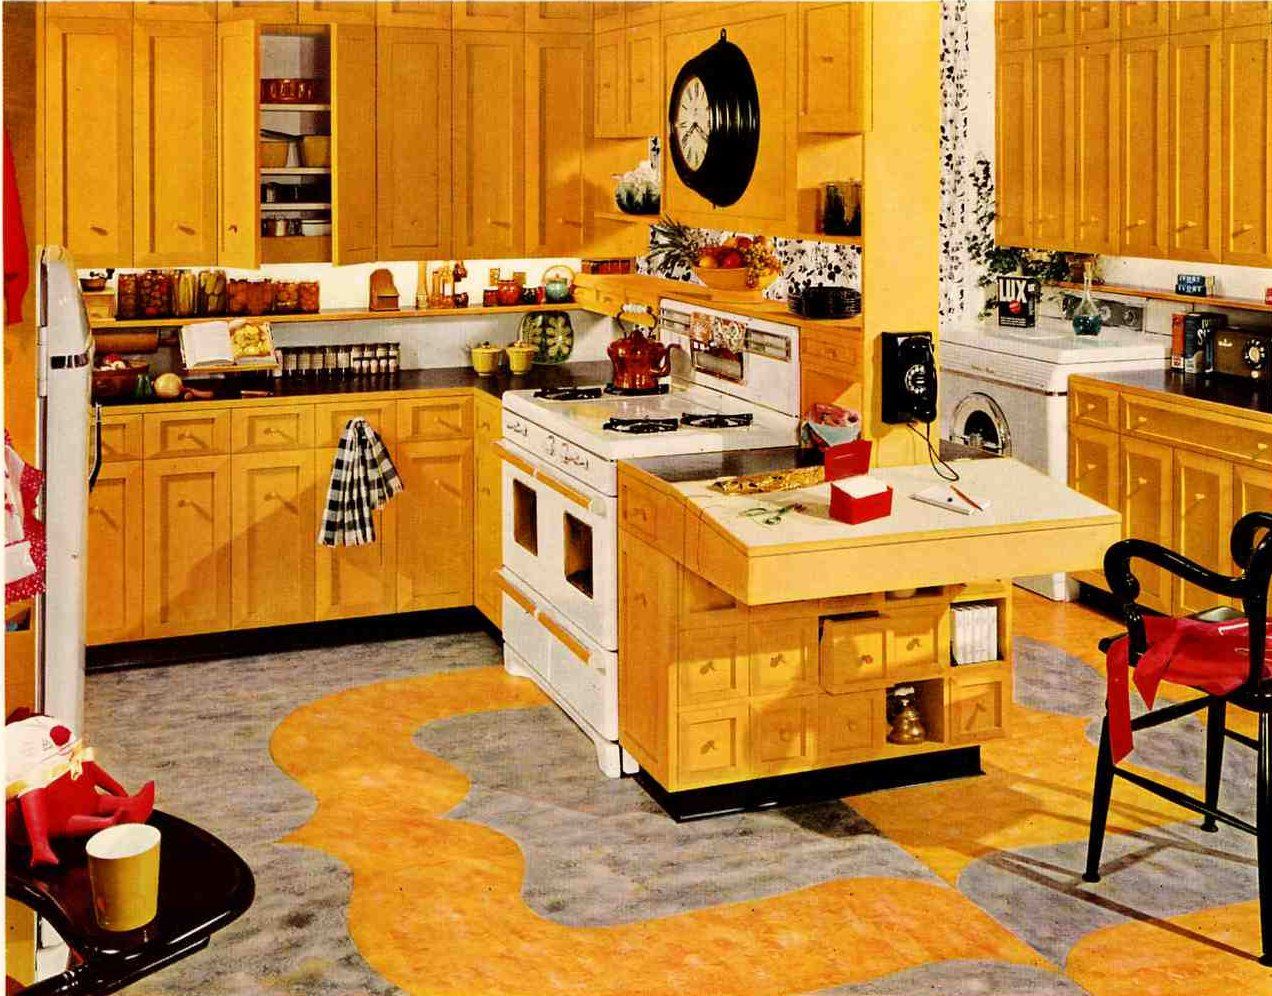 Remarkable Retro Yellow Kitchen 1272 x 996 · 296 kB · jpeg